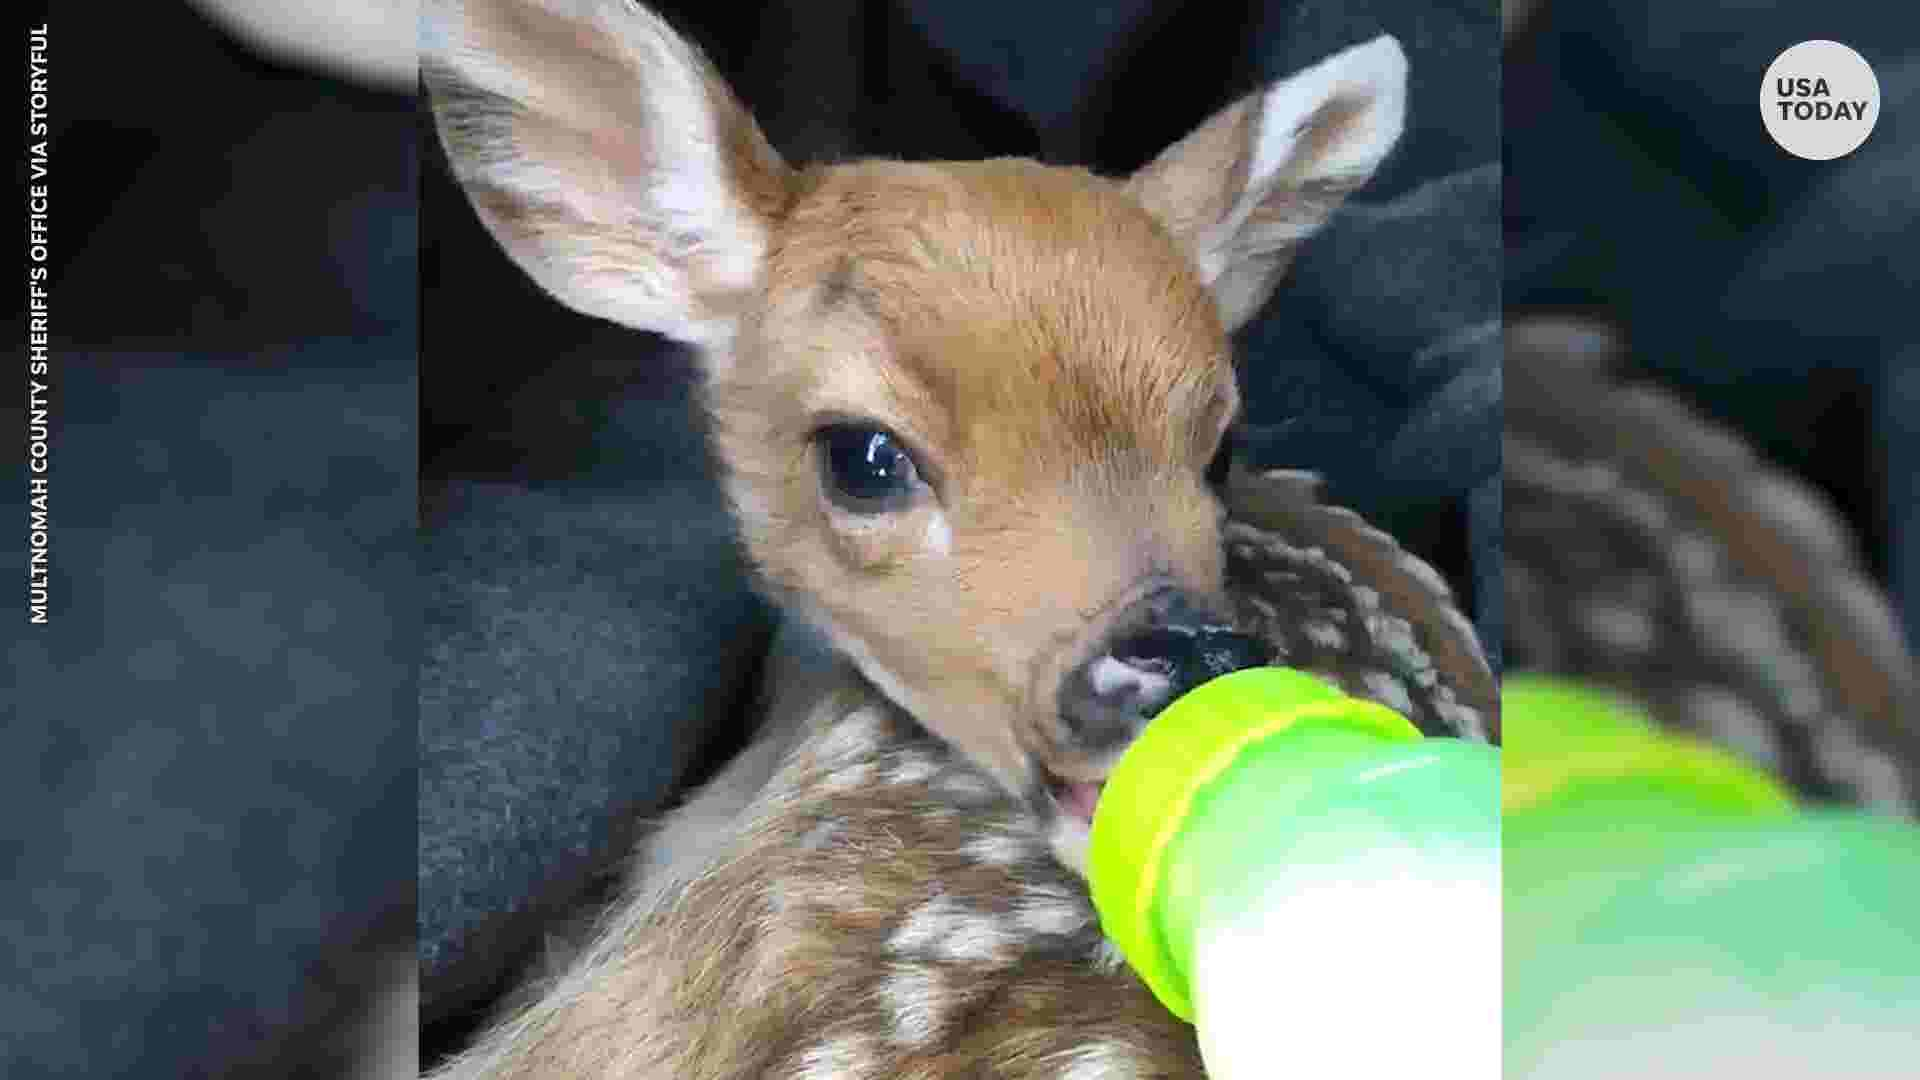 Orphaned baby deer bottle-fed by sheriff's deputy finds new home